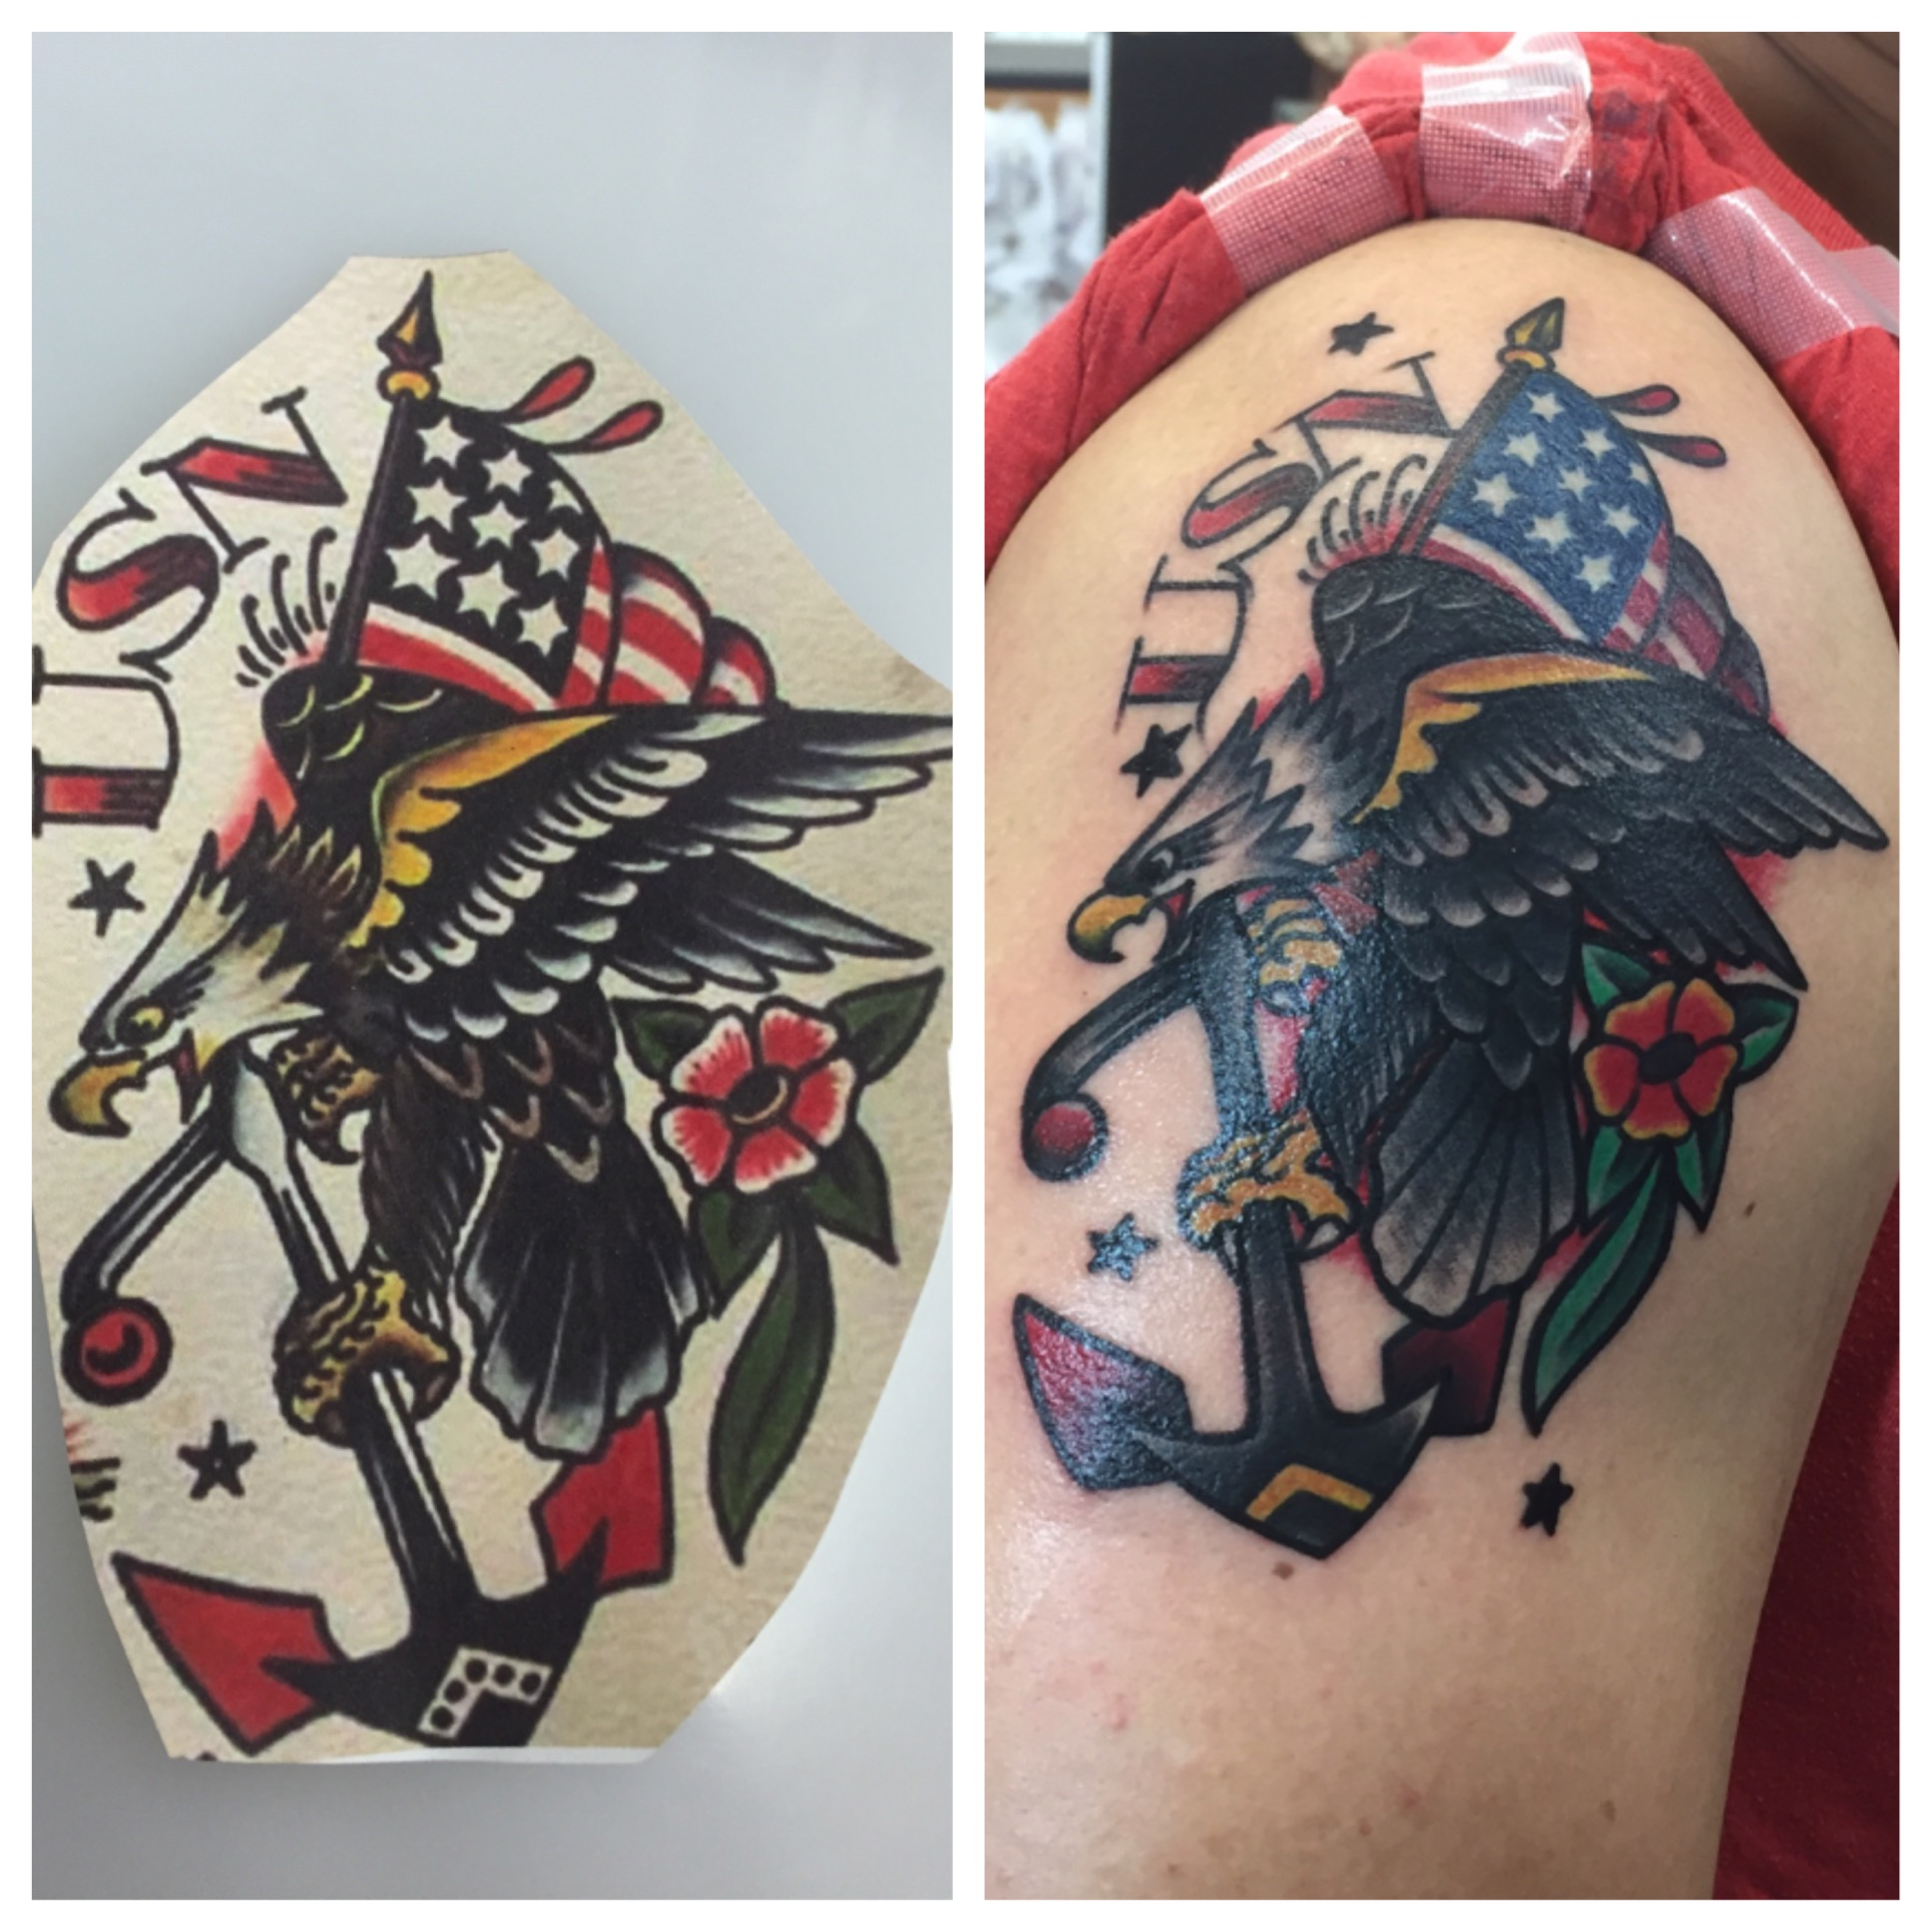 e969981e2 American traditional tattoo ogf sailor jerry eagle